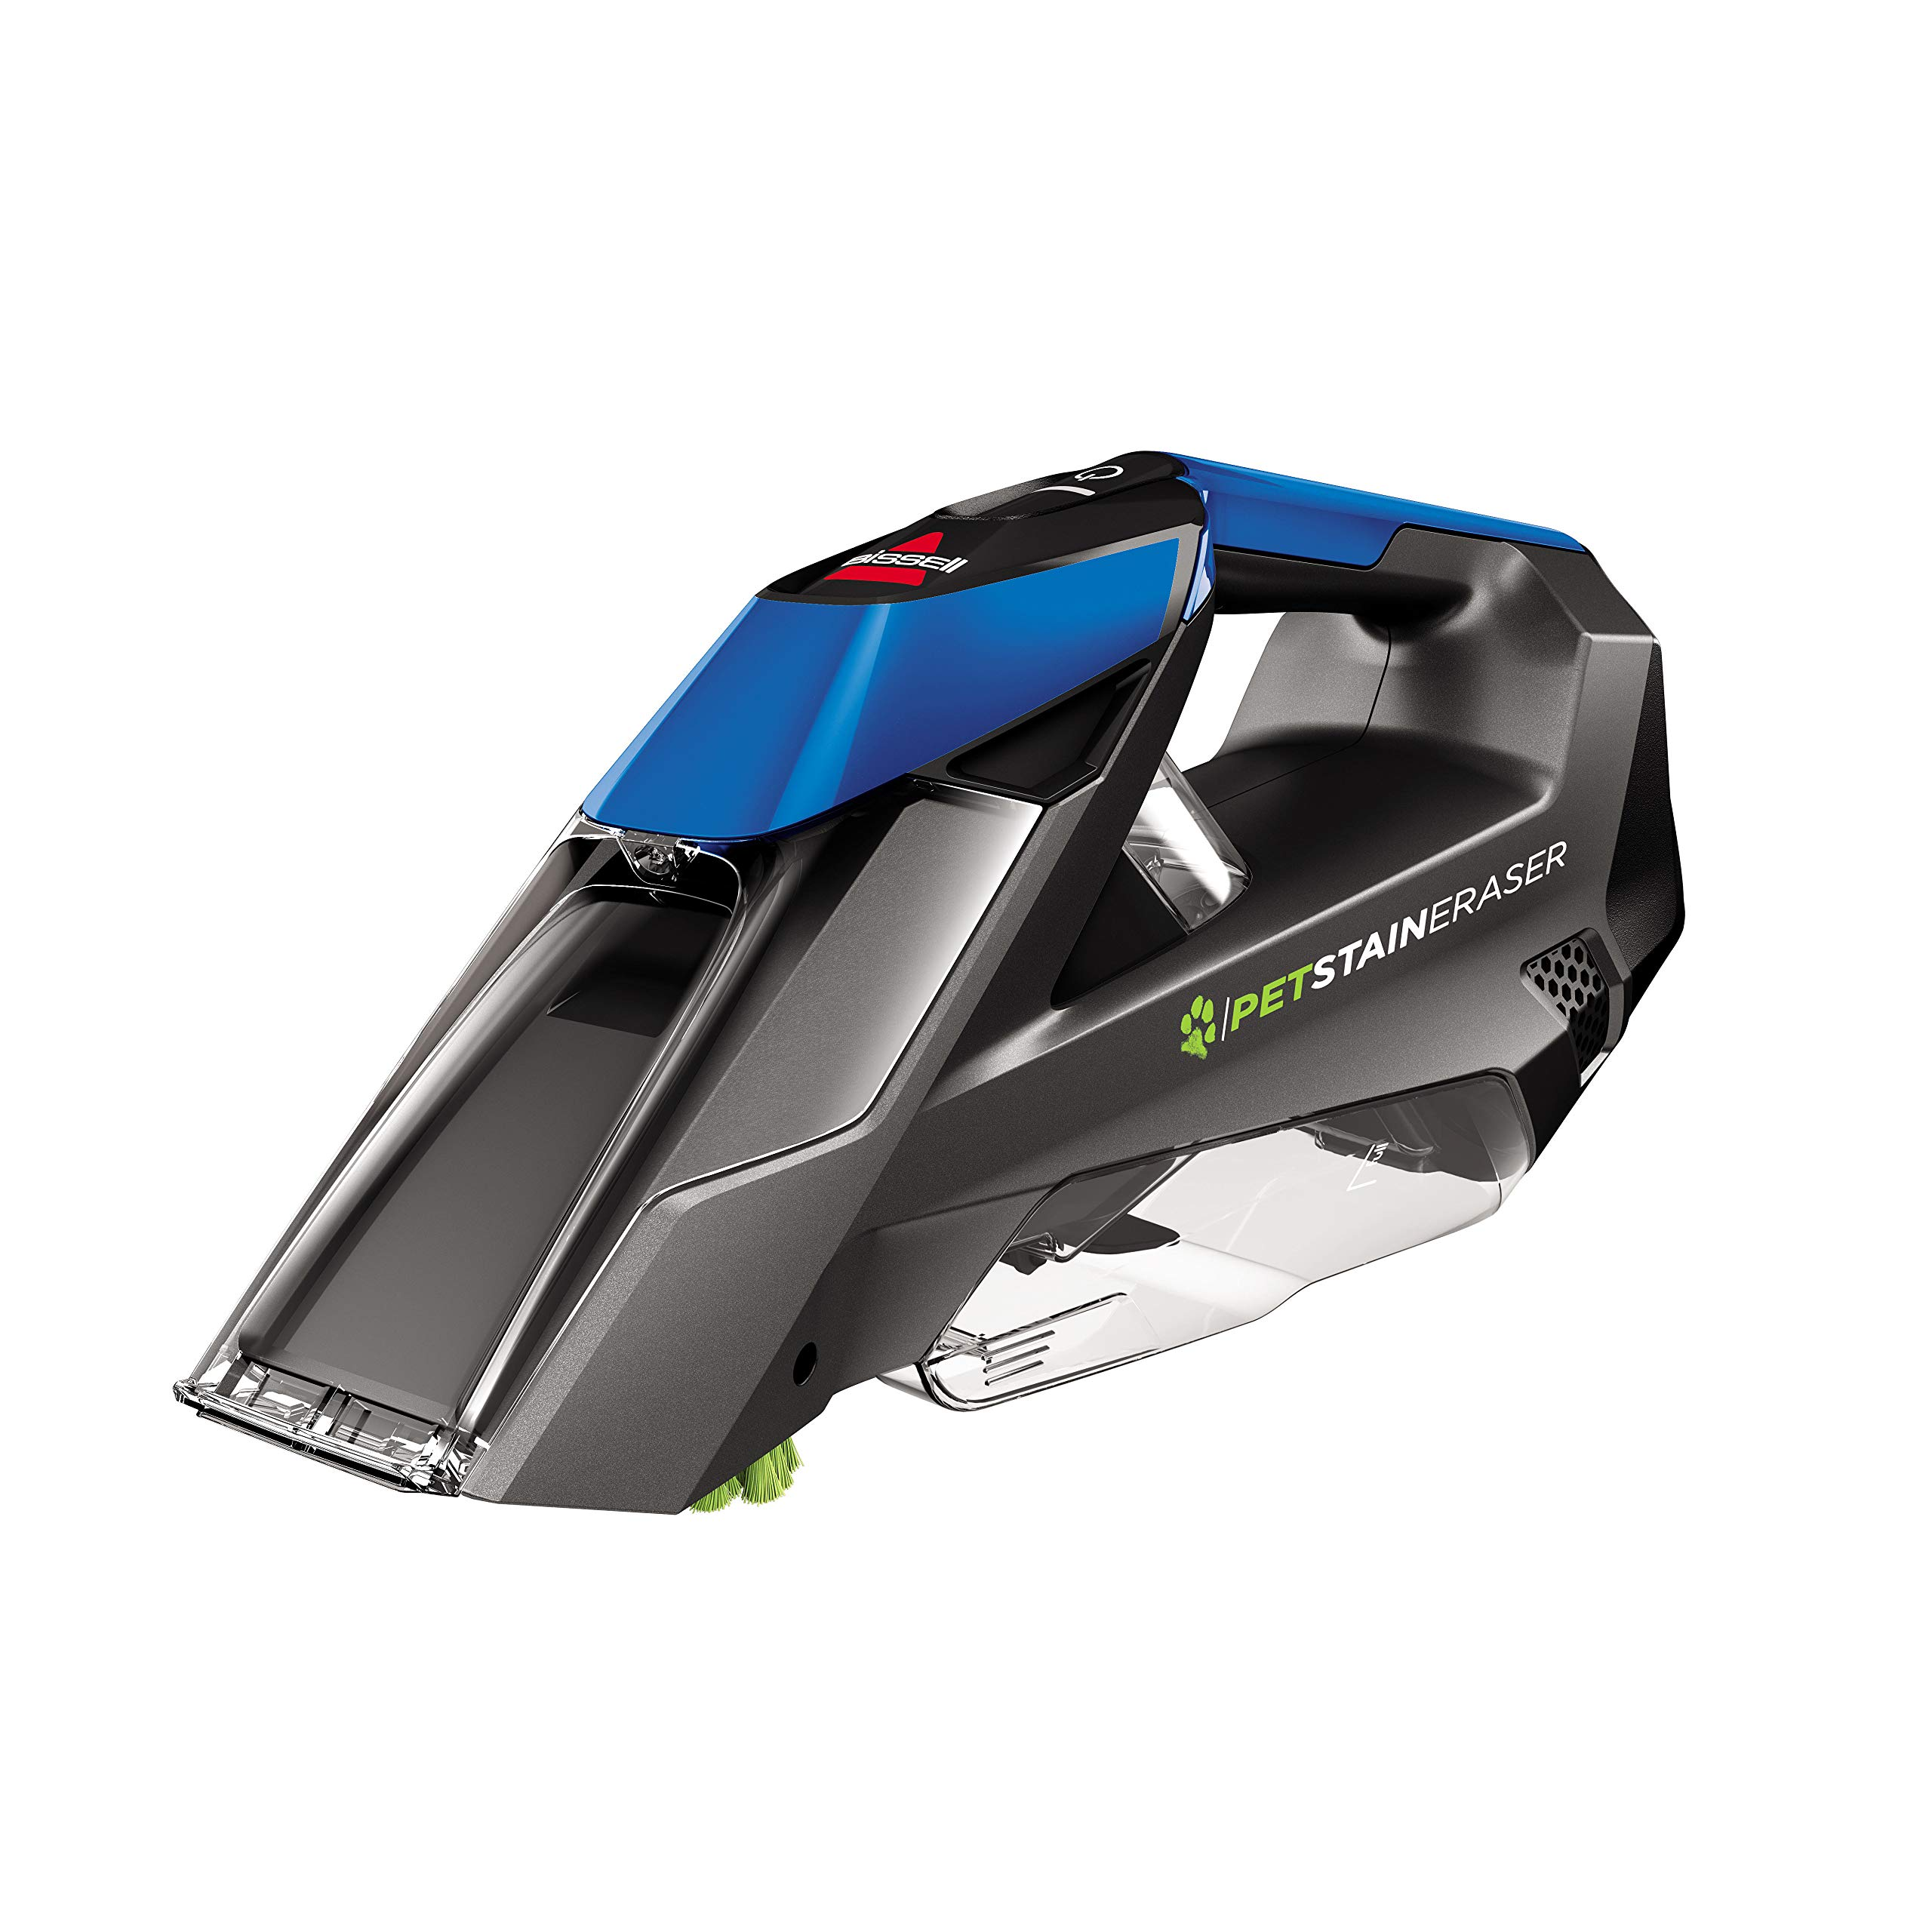 BISSELL 20037 Cordless Portable Cleaner